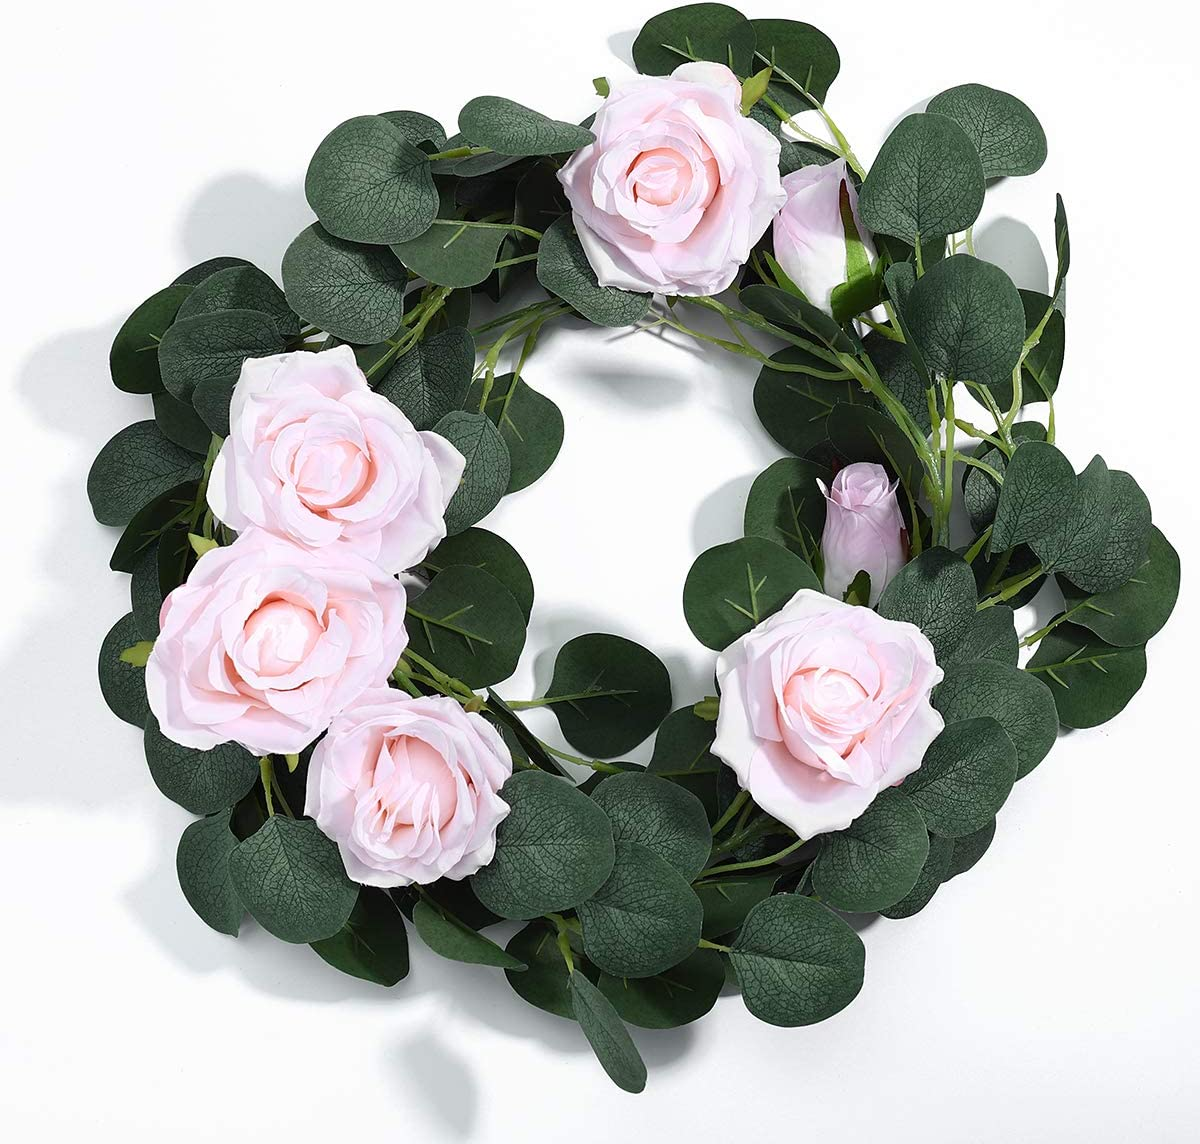 Artificial Rose Flower Garland, 6.6 FT Hanging Flower Strings Greenery Garland for Home Wall Lawn 2 Pack